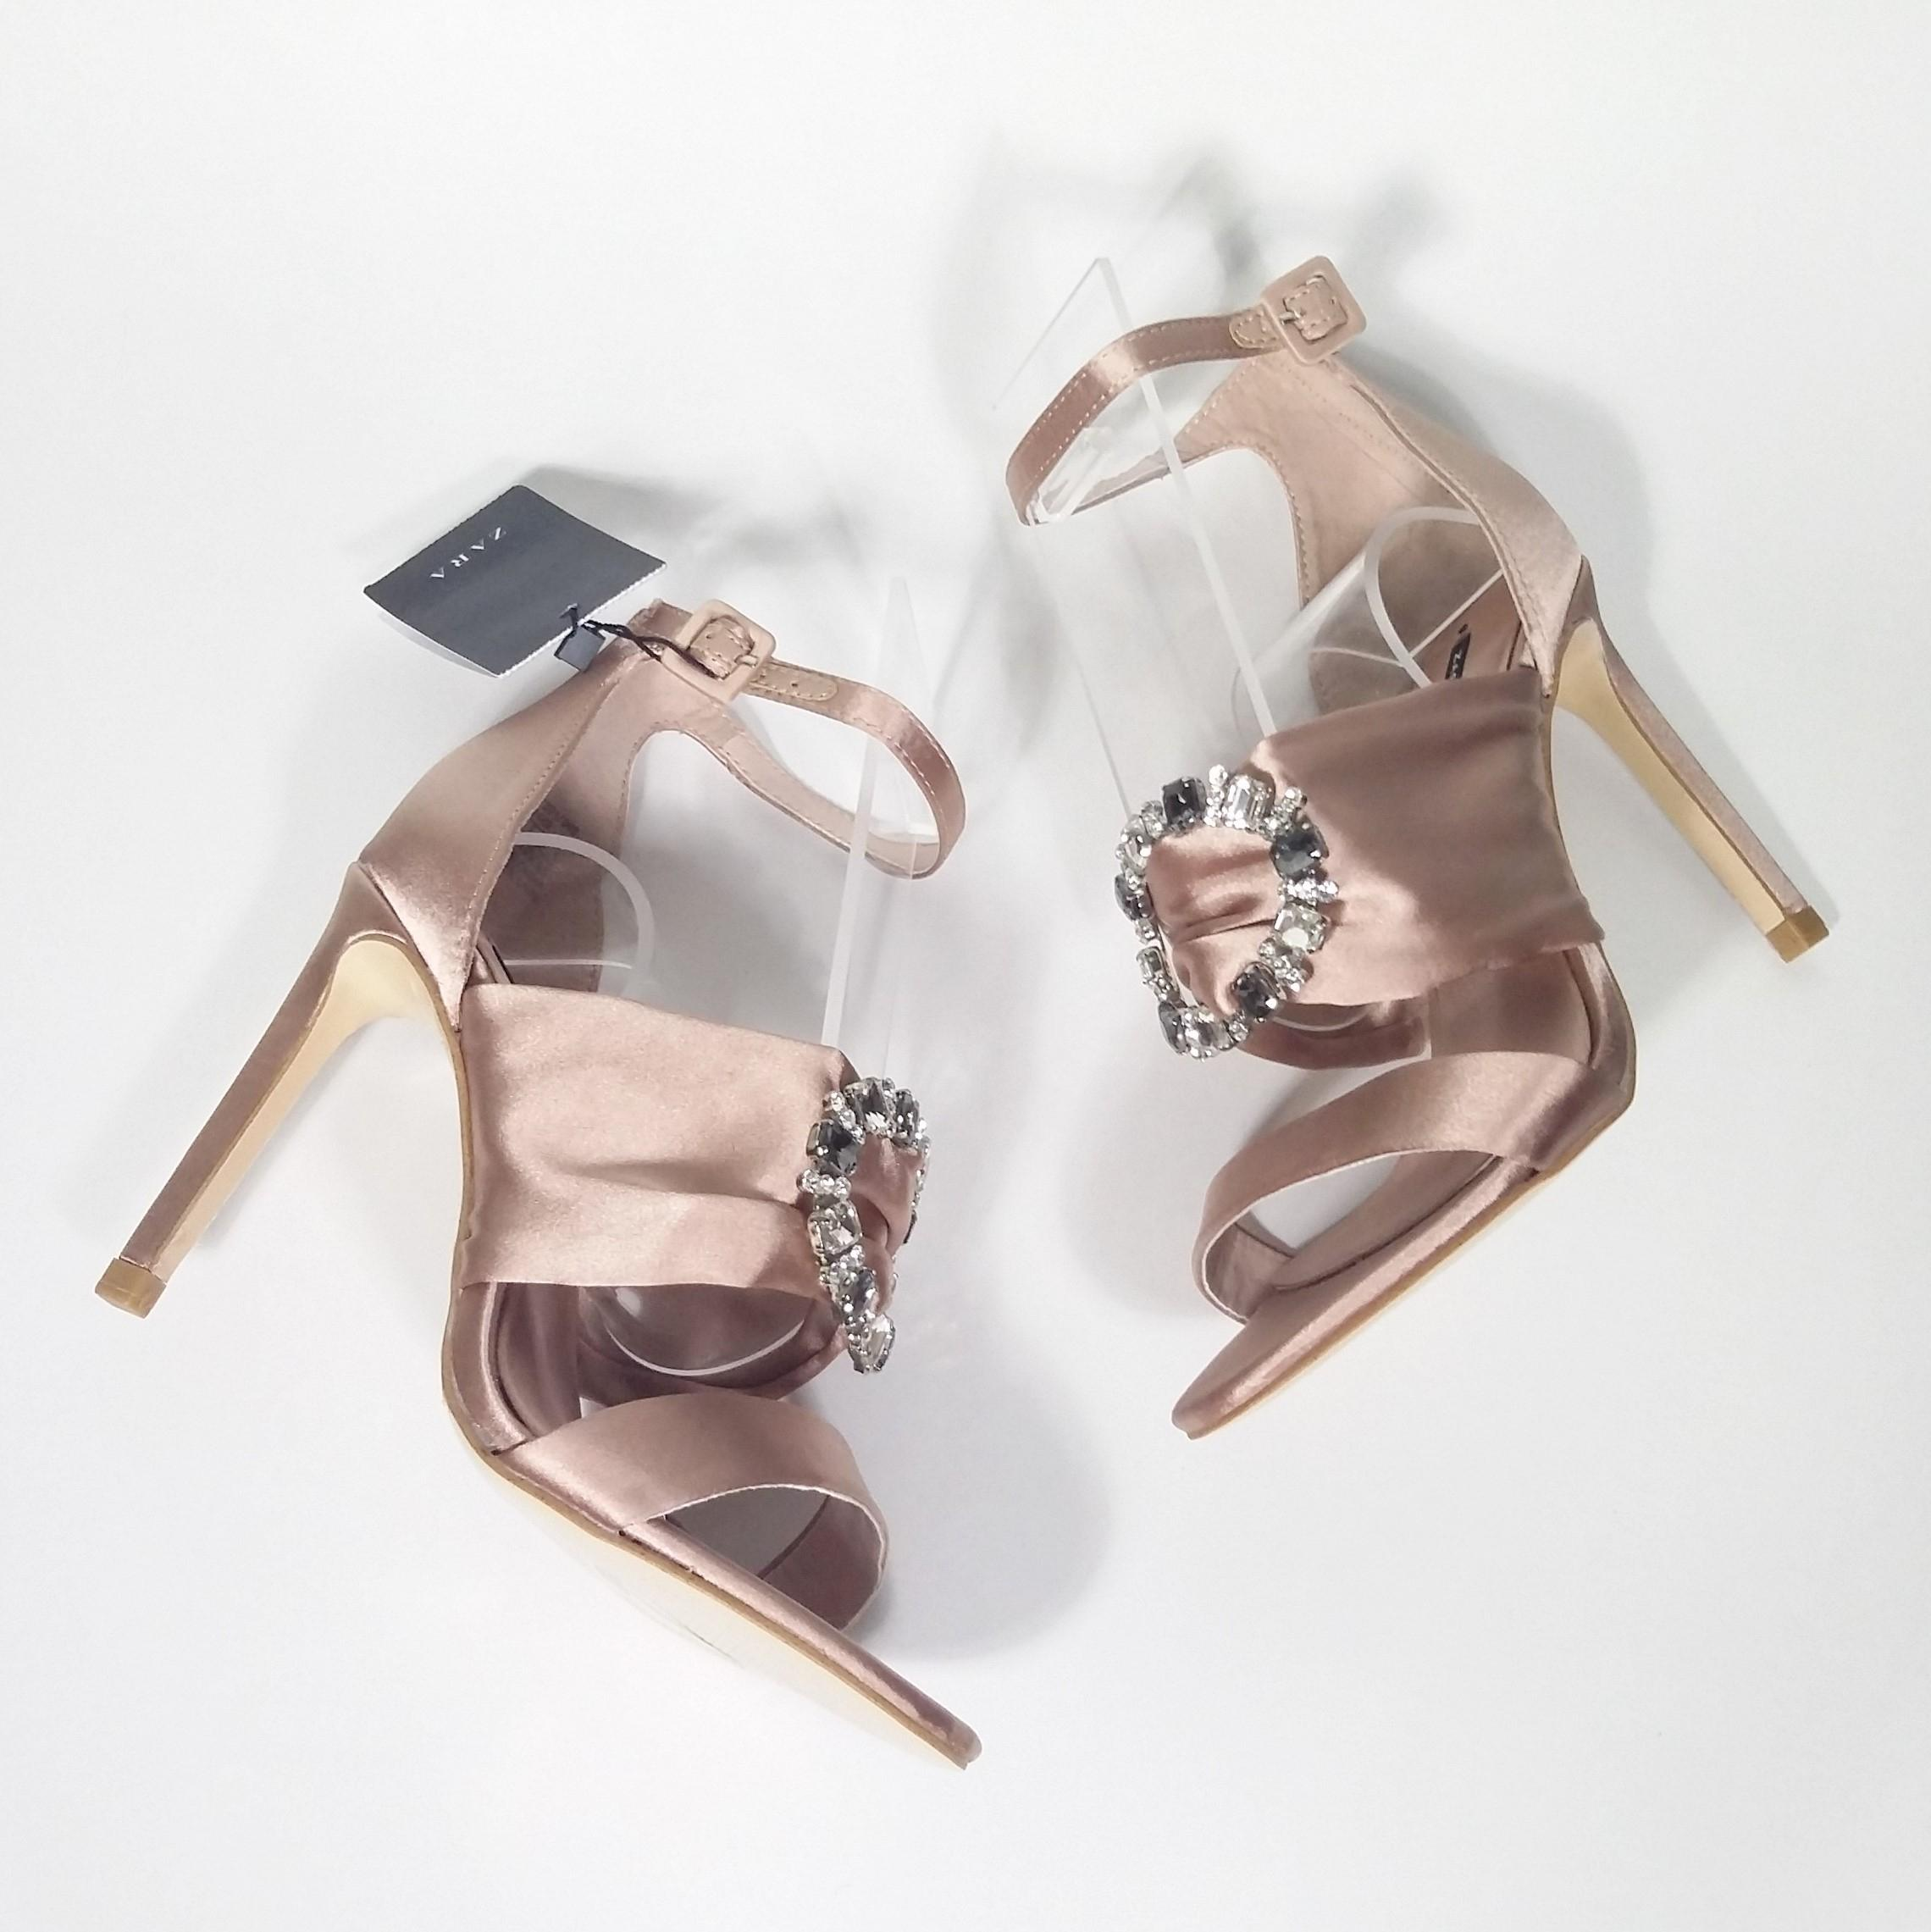 Strass Blush Zara Rose Chaussures Embelli Nouvelles Taille HTx1Eqw